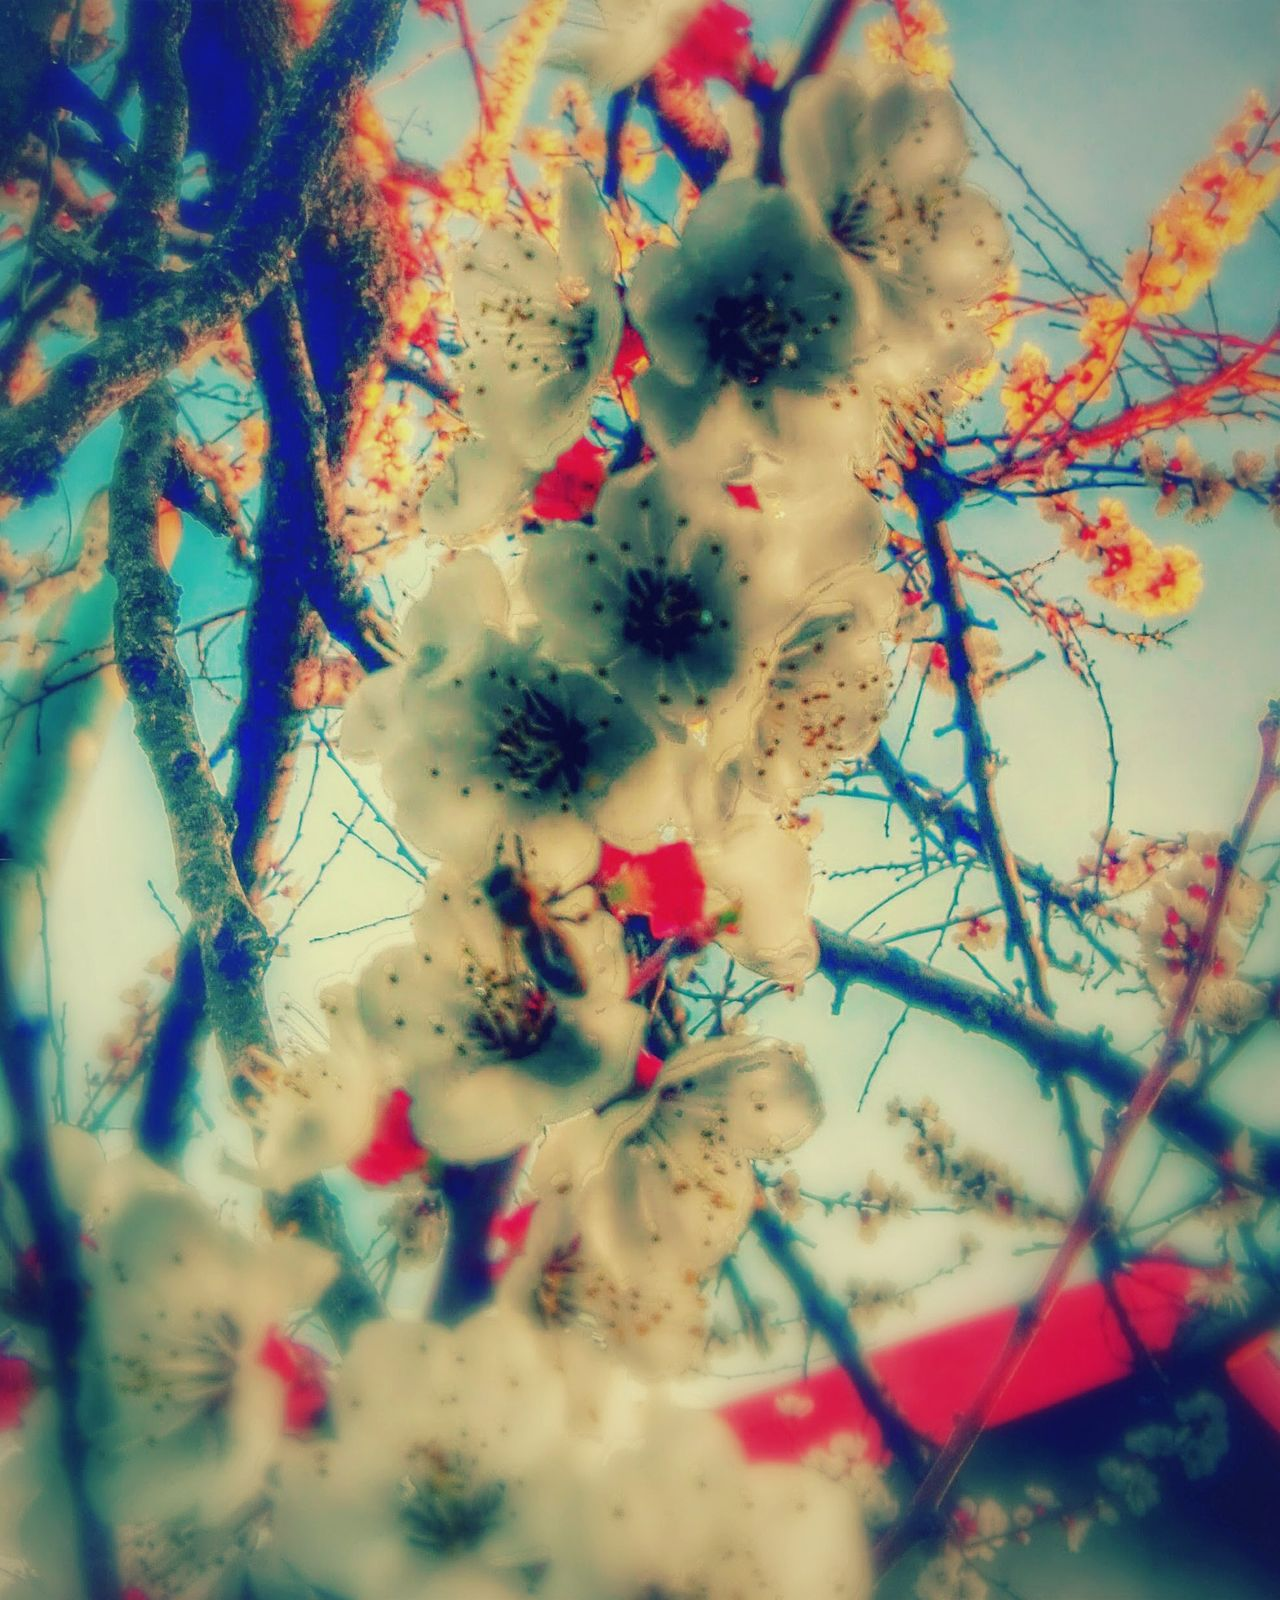 Multi Colored No People Flower Sky Close-up Tree Nature Backgrounds Flowers Apricot Blossom Veronica Ionita Wolfzuachis Ionitaveronica Showcase: March Eyeem Market @WOLFZUACHiV Showcase: 2017 Veronicaionita Huaweiphotography Wolfzuachiv On Market Edited By @wolfzuachis Flower Head Apricot Blossoms Colorful EyeEmNewHere